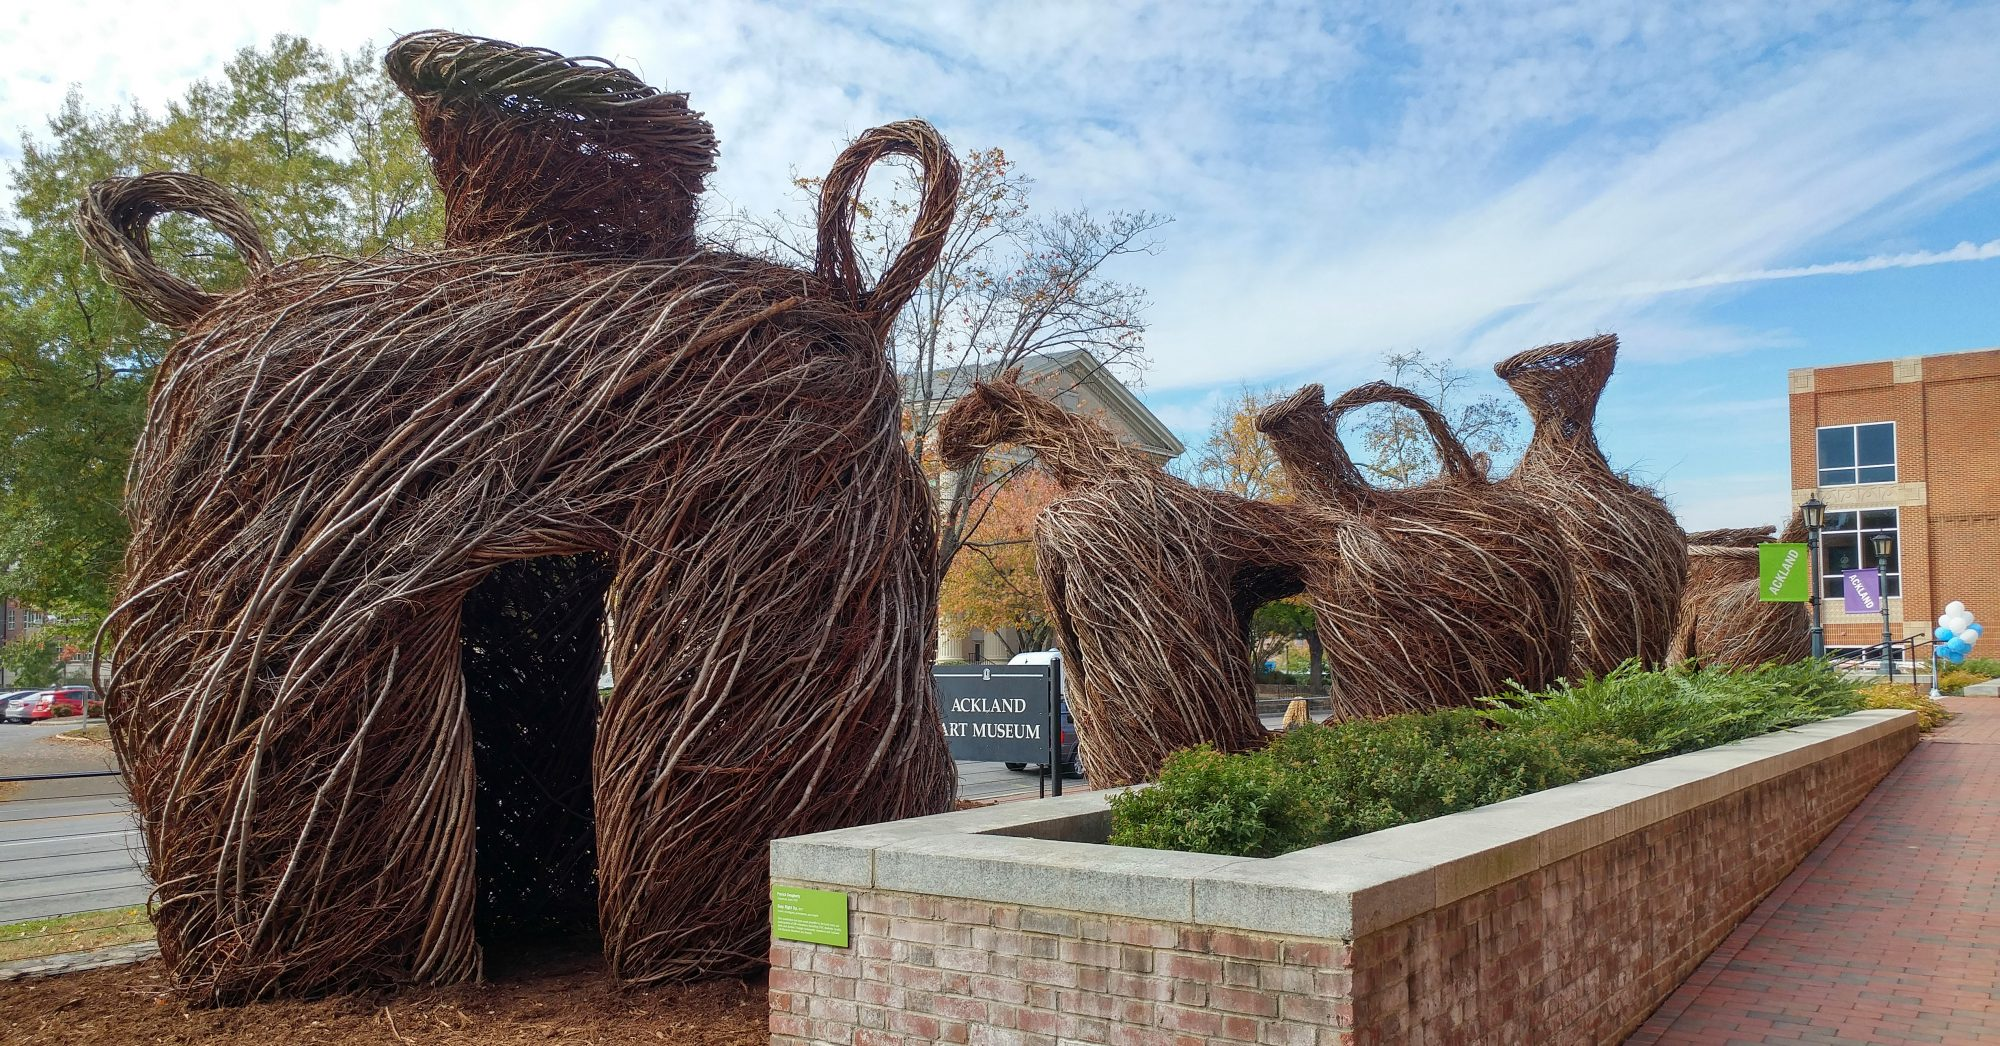 A row of giant vessel-shaped sculptures made out of sticks